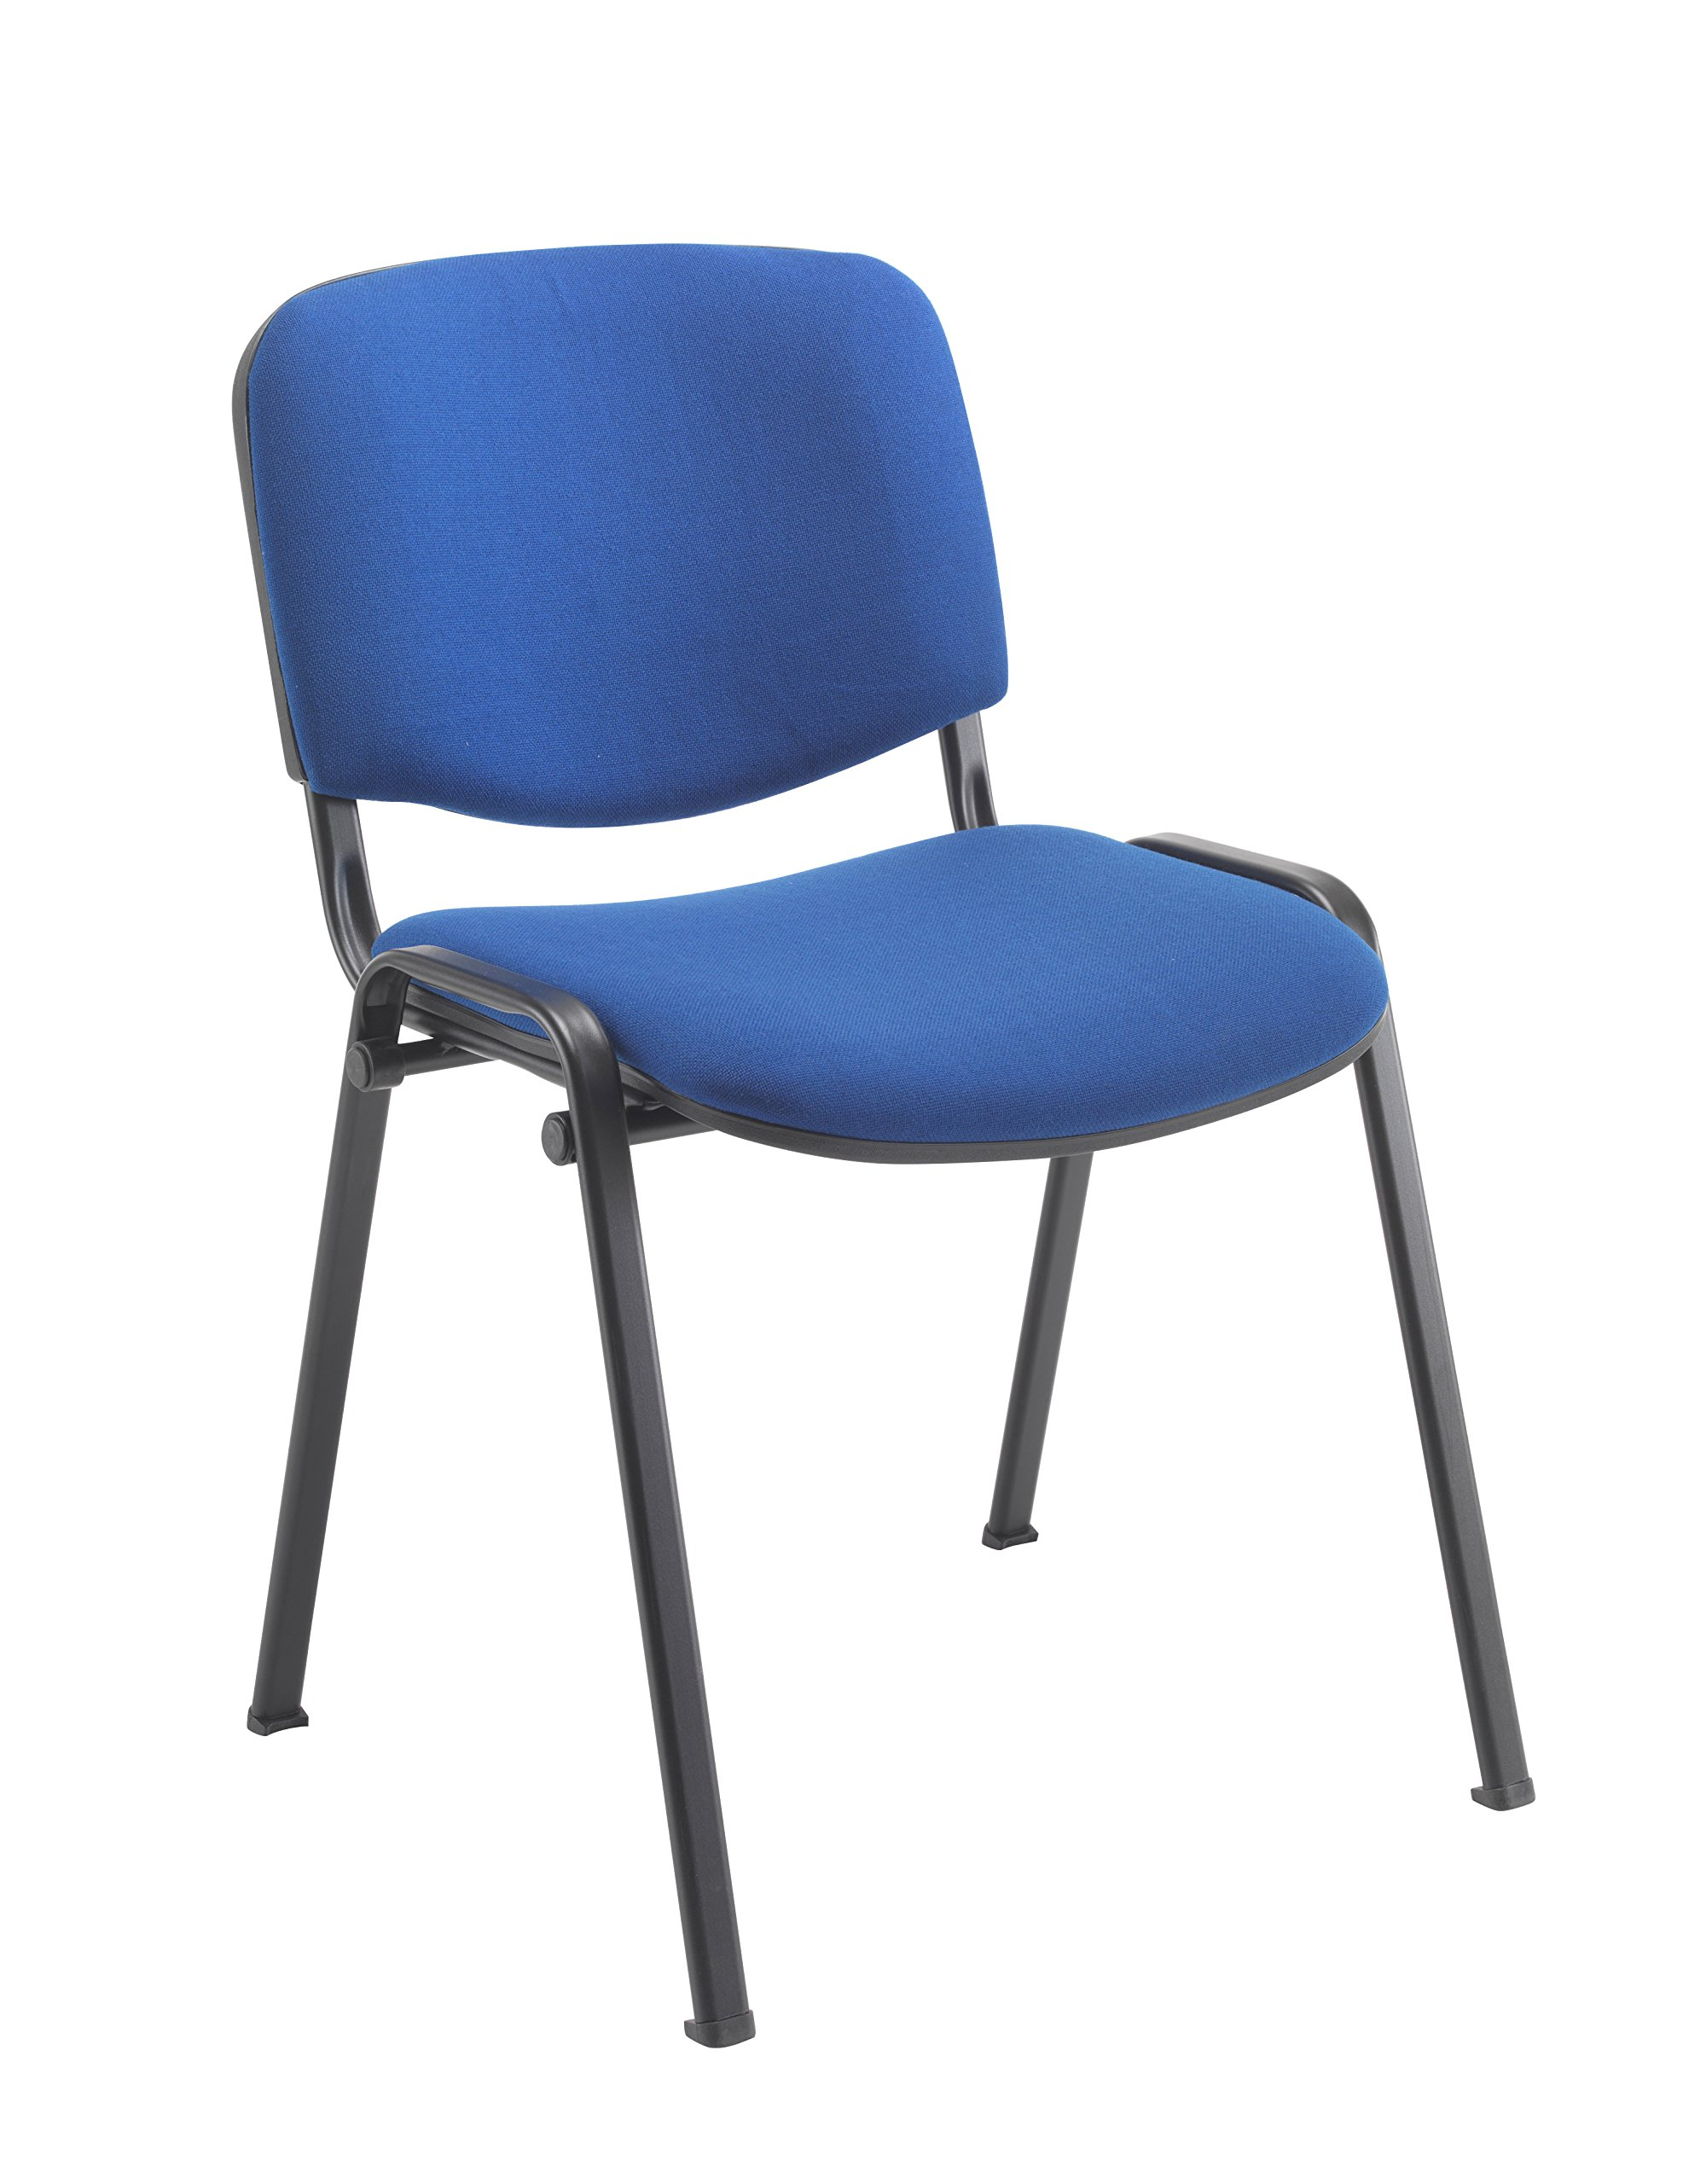 Office Hippo Heavy Duty Stackable Reception Chair, Black Frame, Fabric,  Royal Blue